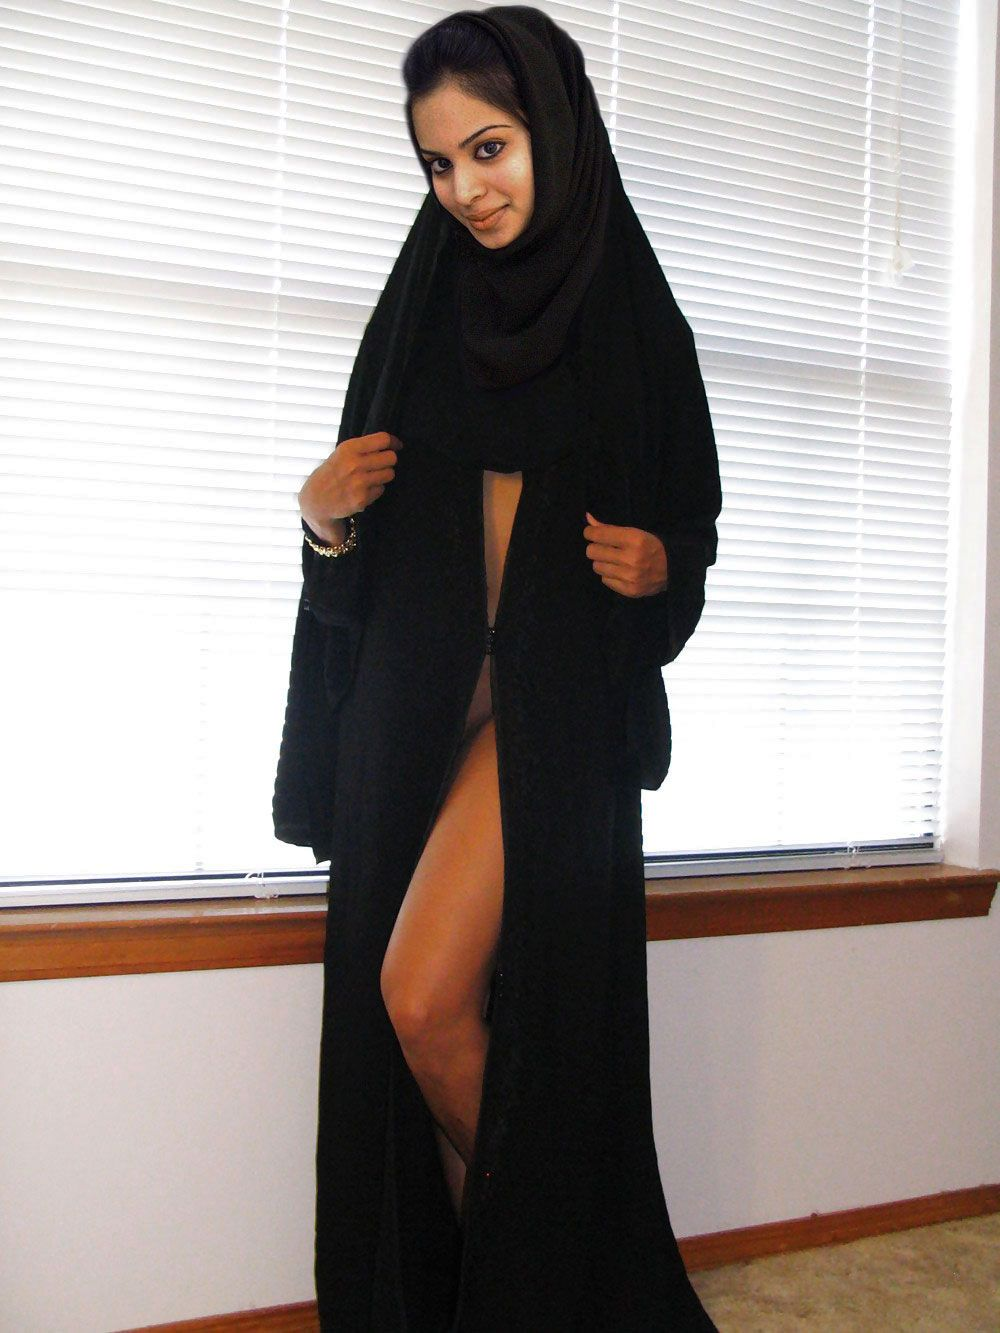 pinmike epply jr. on hot arab women | pinterest | arab women